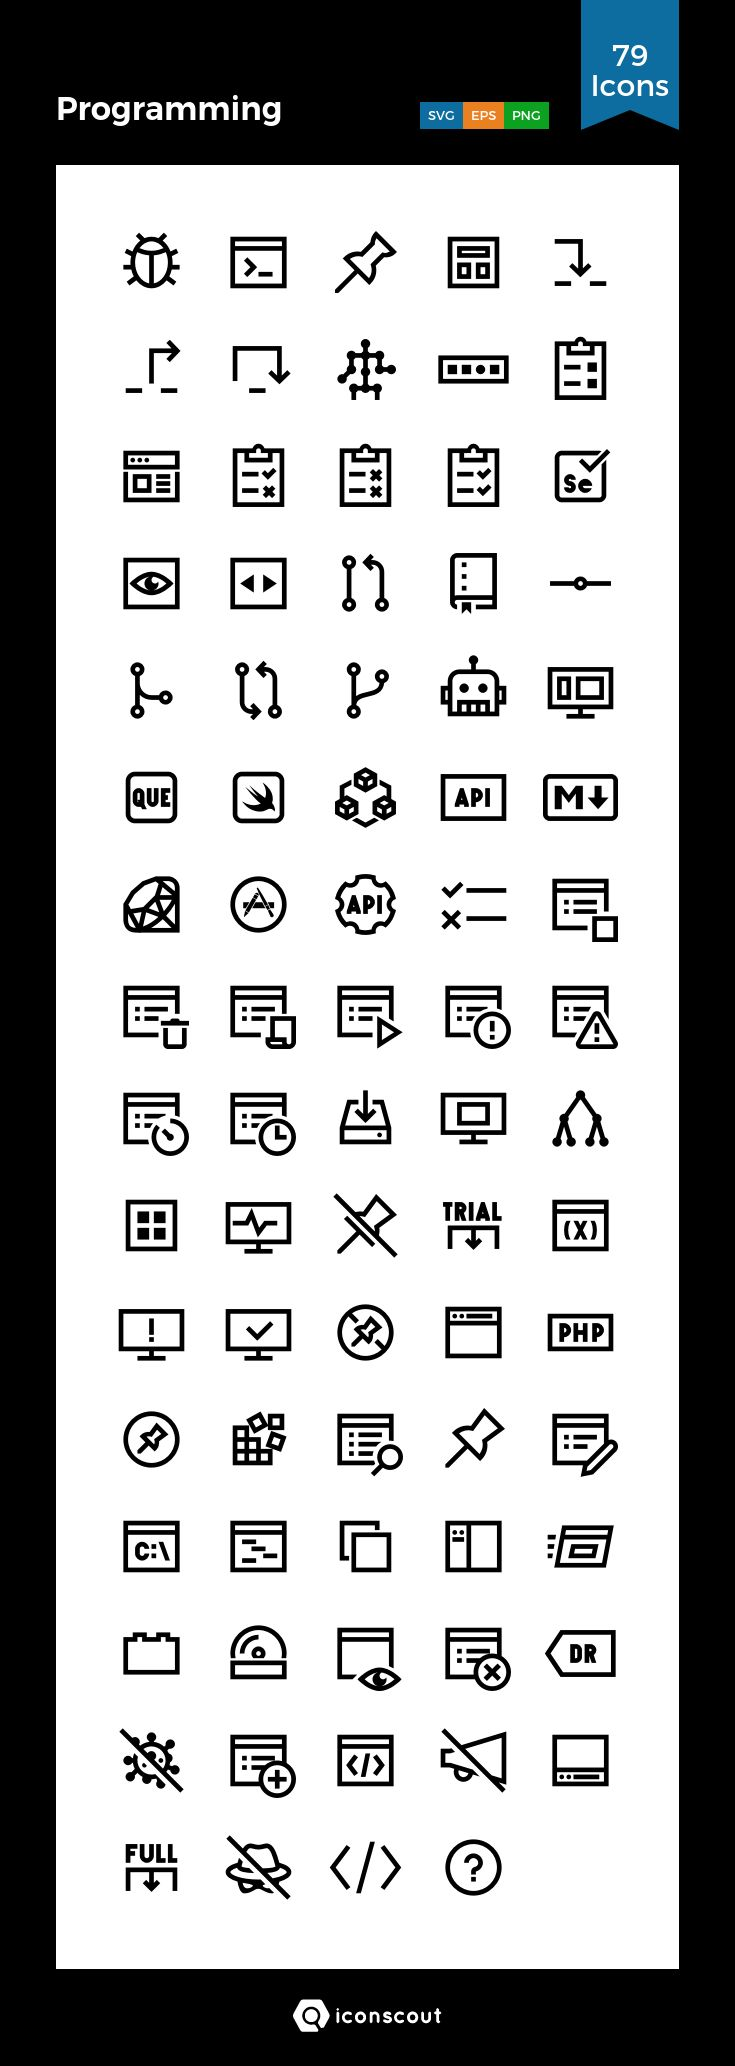 Programming  Icon Pack - 79 Line Icons